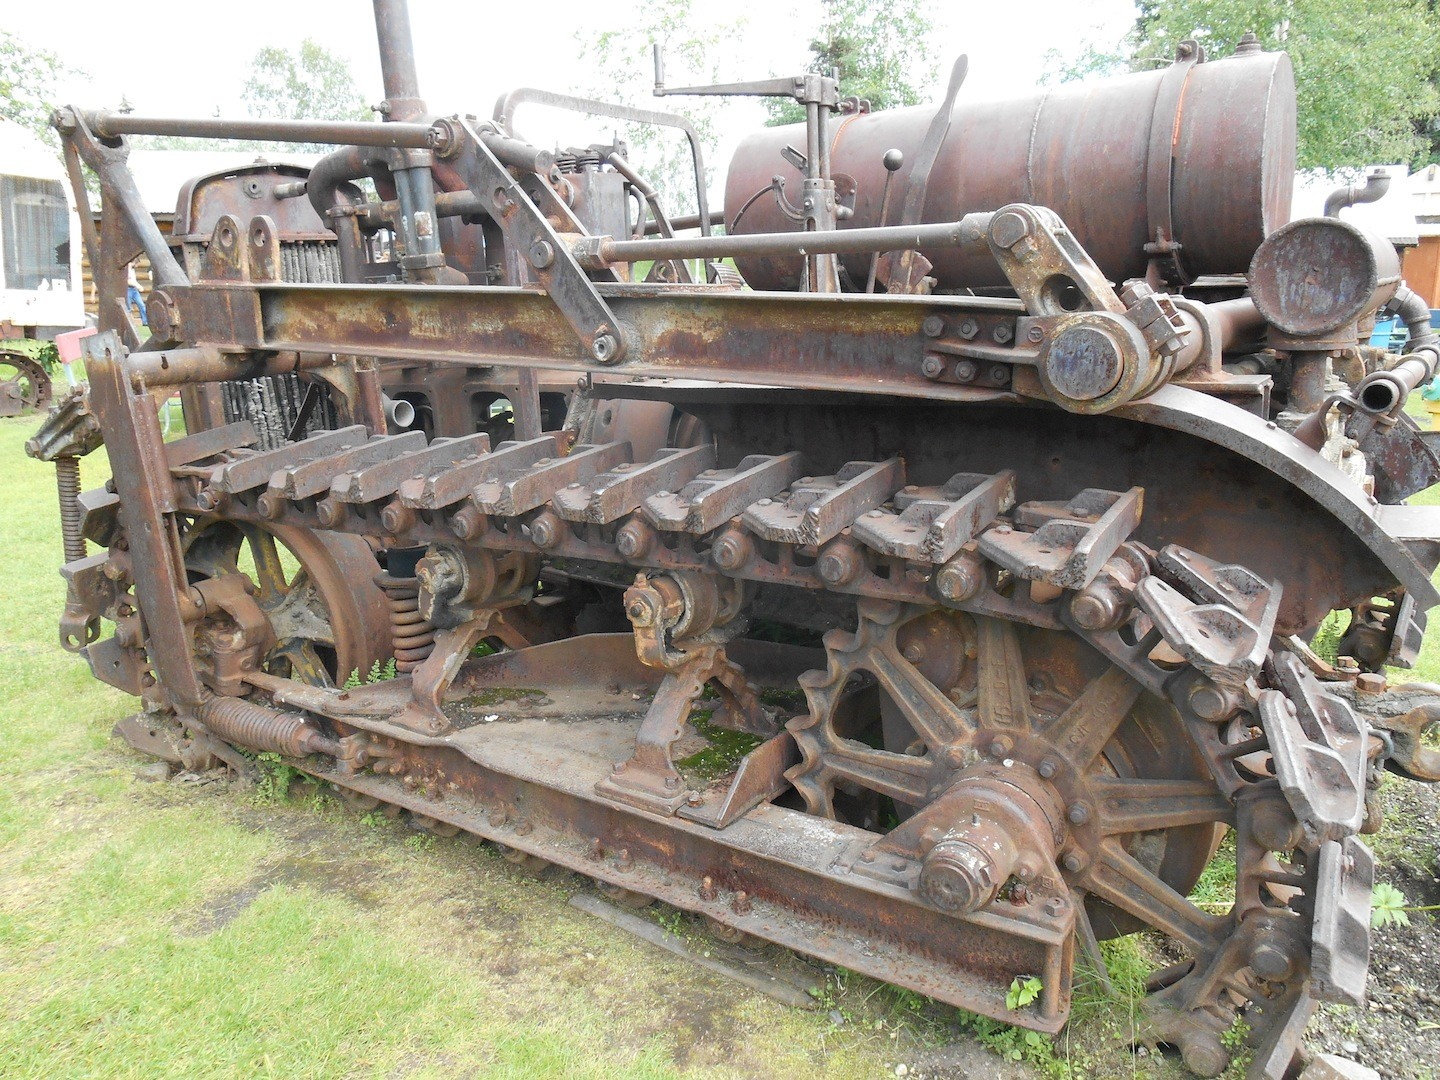 Some equipment had to be driven overland through the Alaskan bush for miles to reach mining sites.